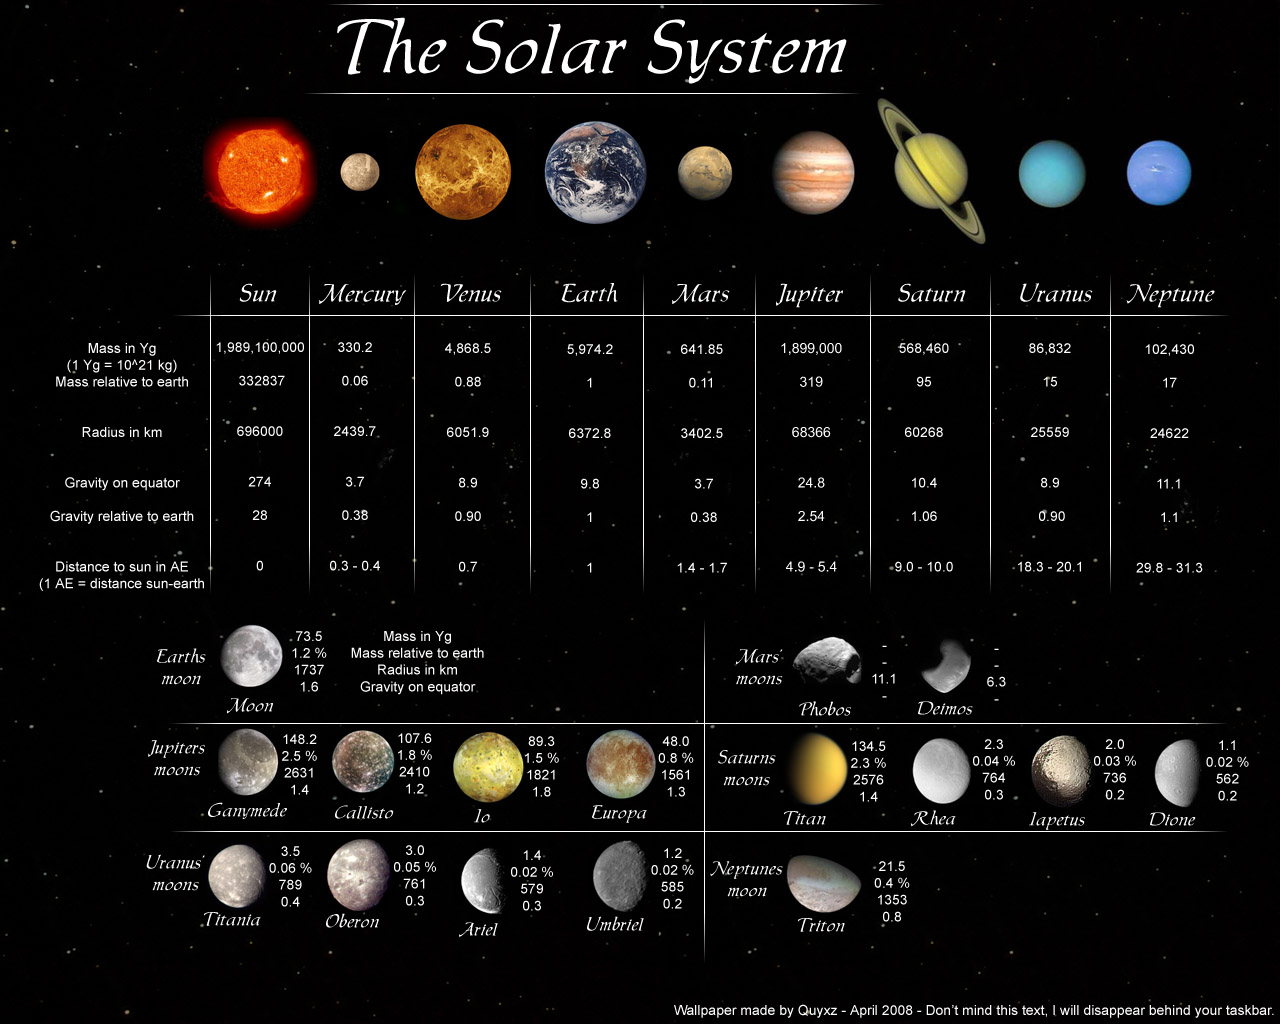 Image the solar system wallpaper by quyxzg galnet wiki the solar system wallpaper by quyxzg sciox Choice Image